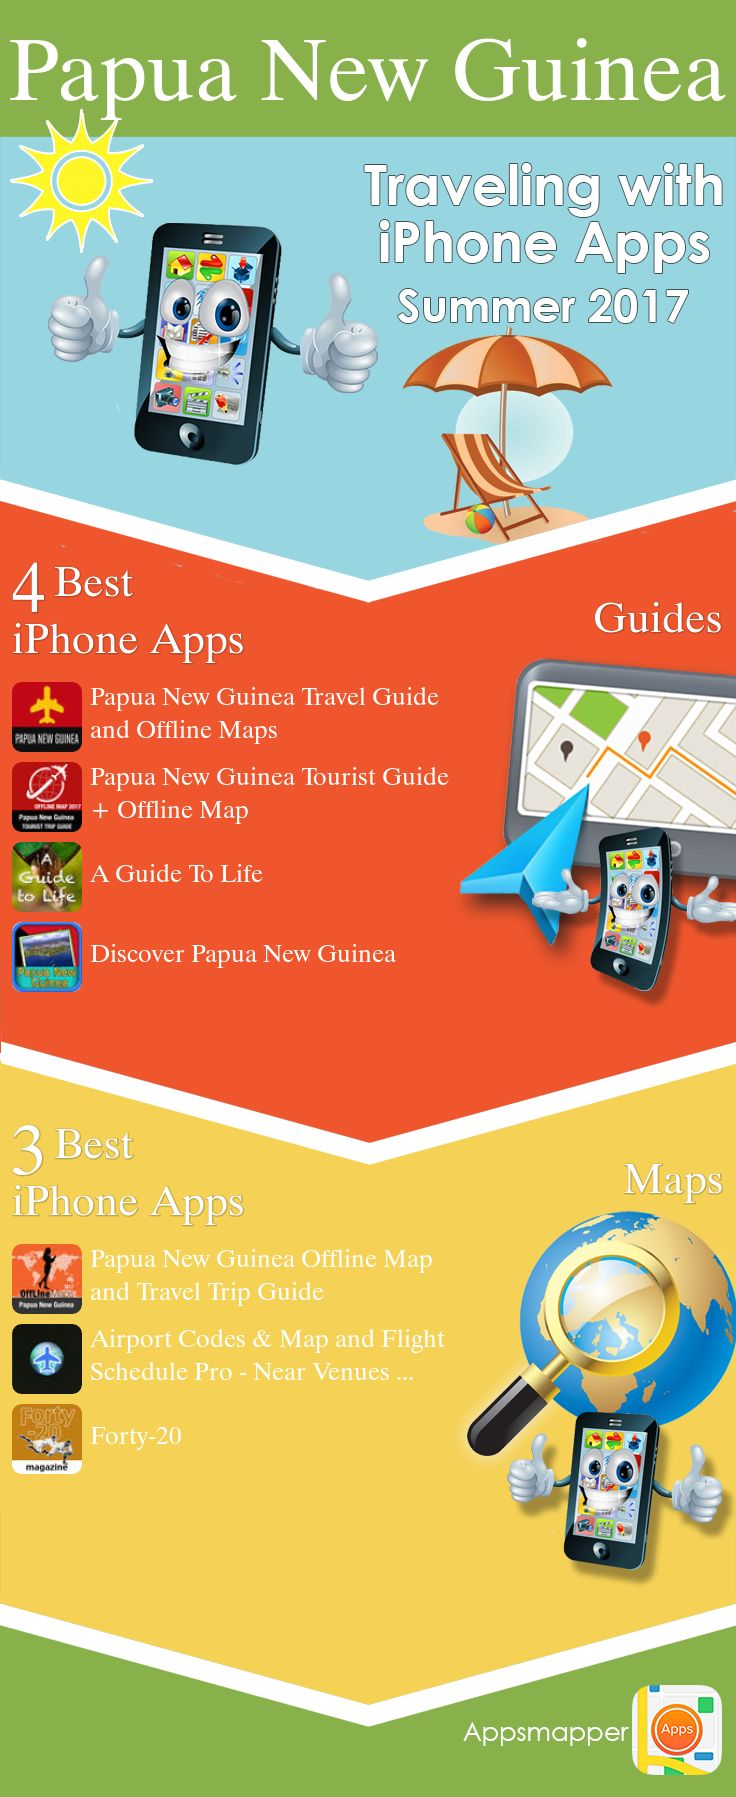 Papua New Guinea iPhone apps: Travel Guides, Maps, Transportation, Biking, Museums, Parking, Sport and apps for Students.